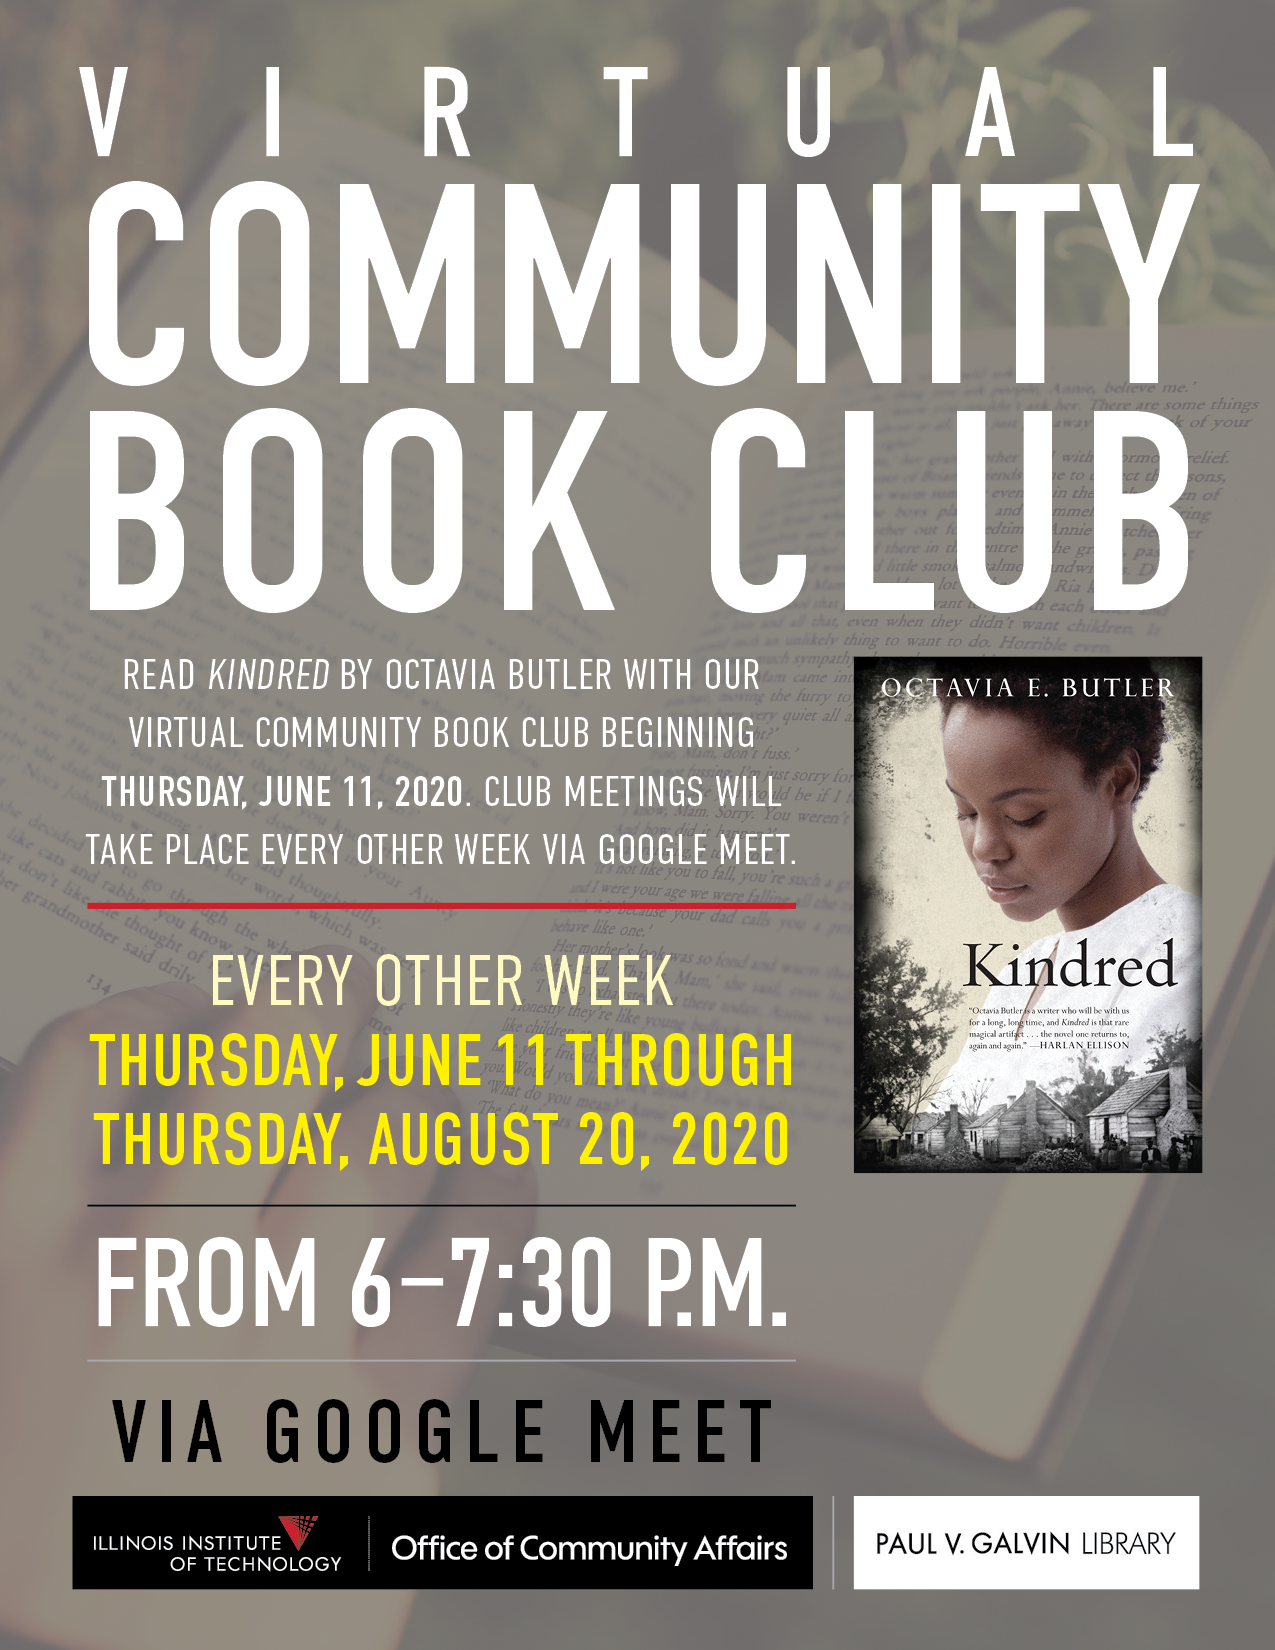 CA_Community Book Club Flyer_r2.png